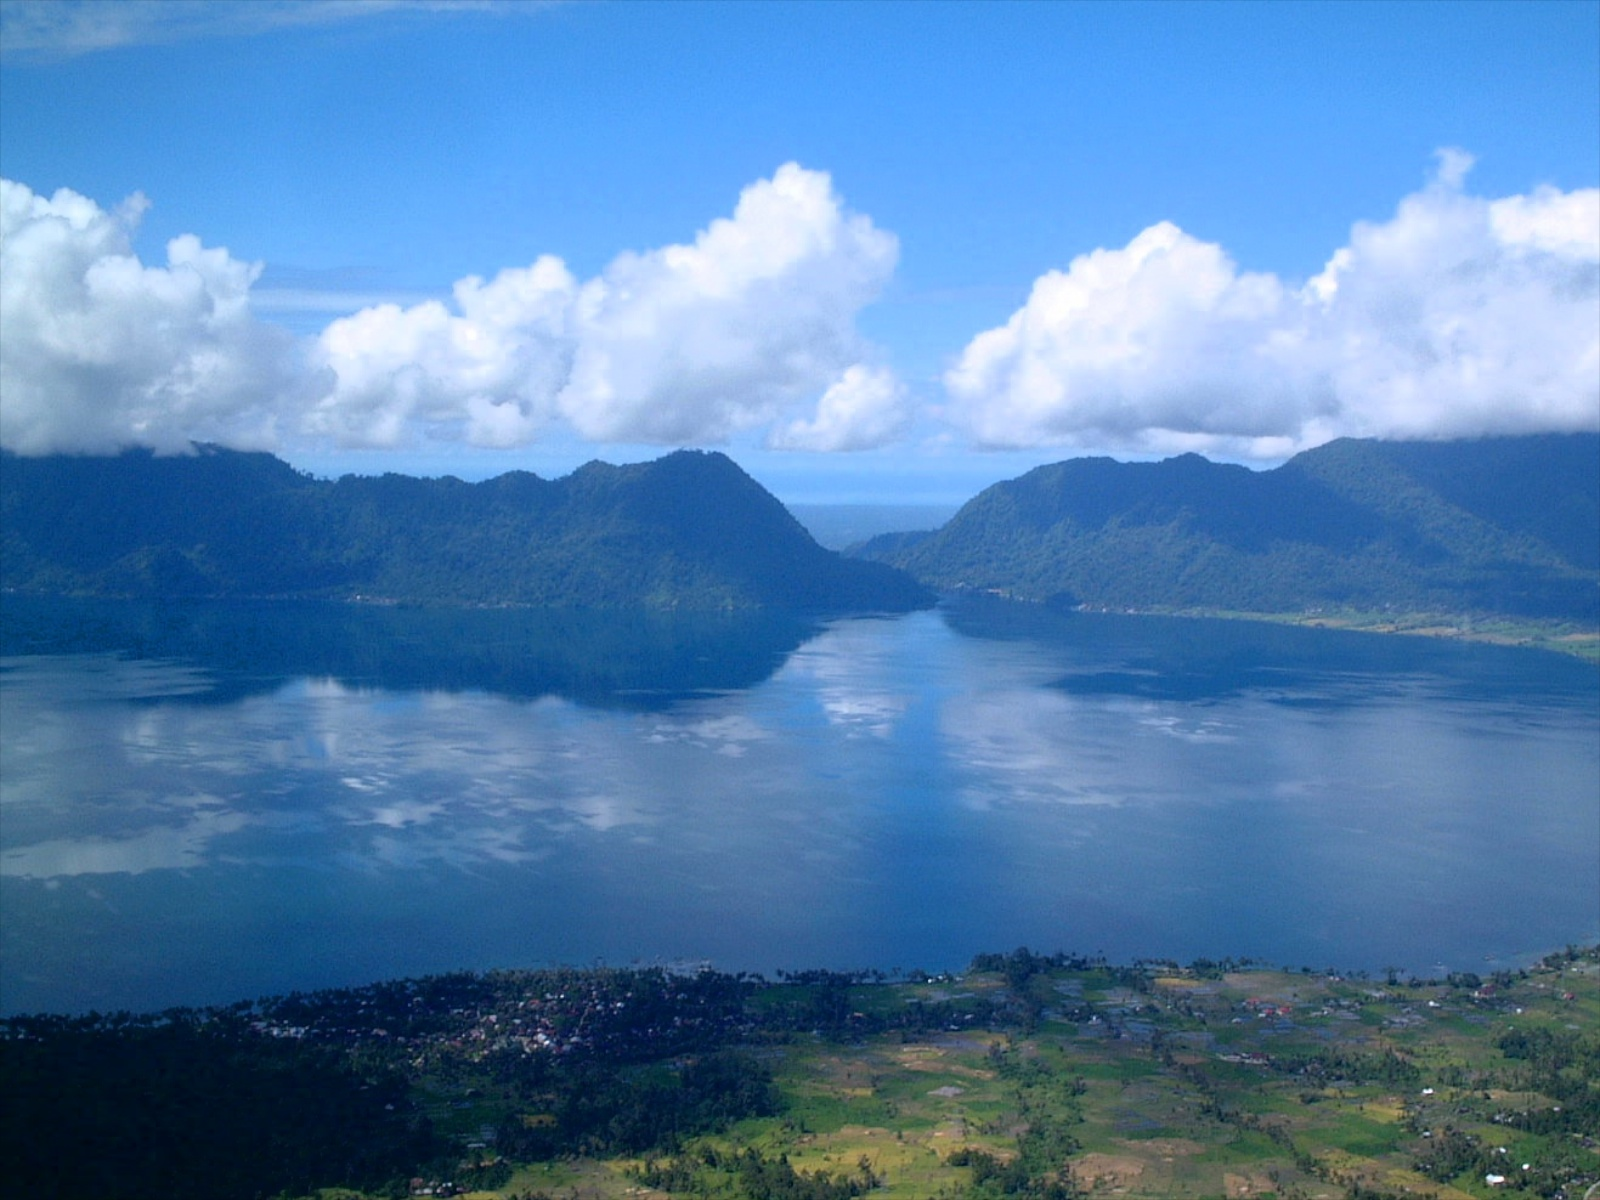 Lake Maninjau from Puncak Lawang (1,